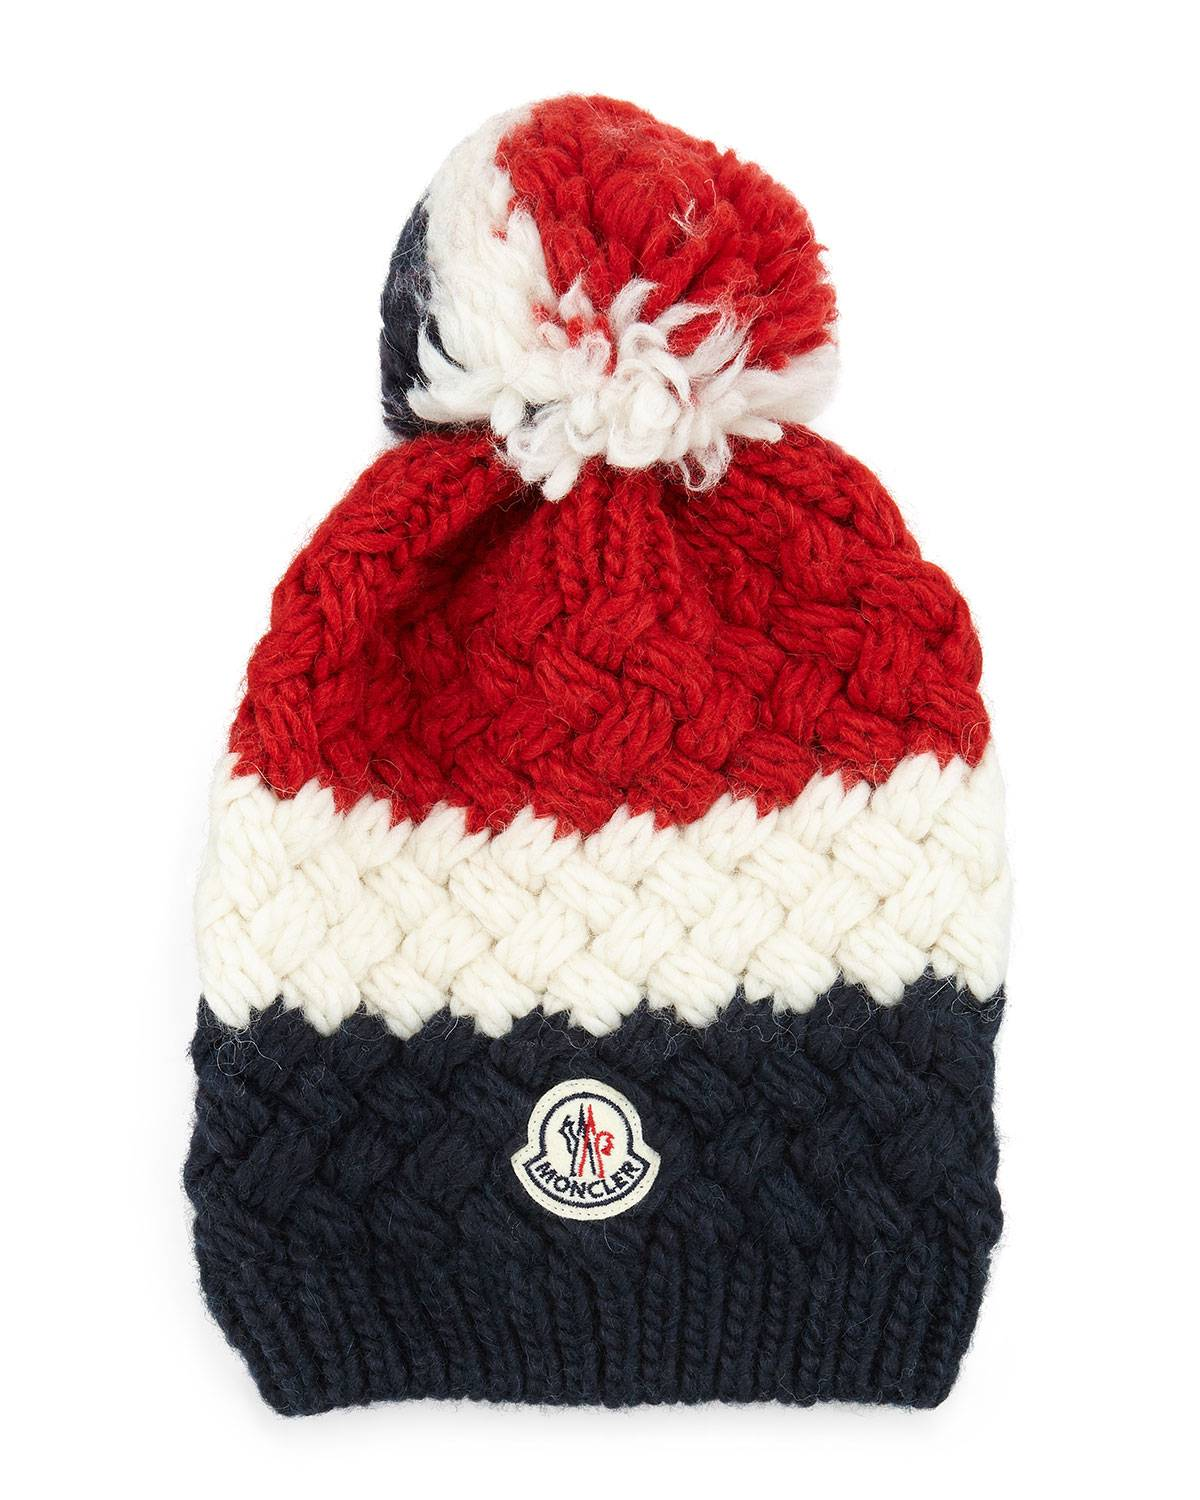 Girl's 100% pure cashmere hat